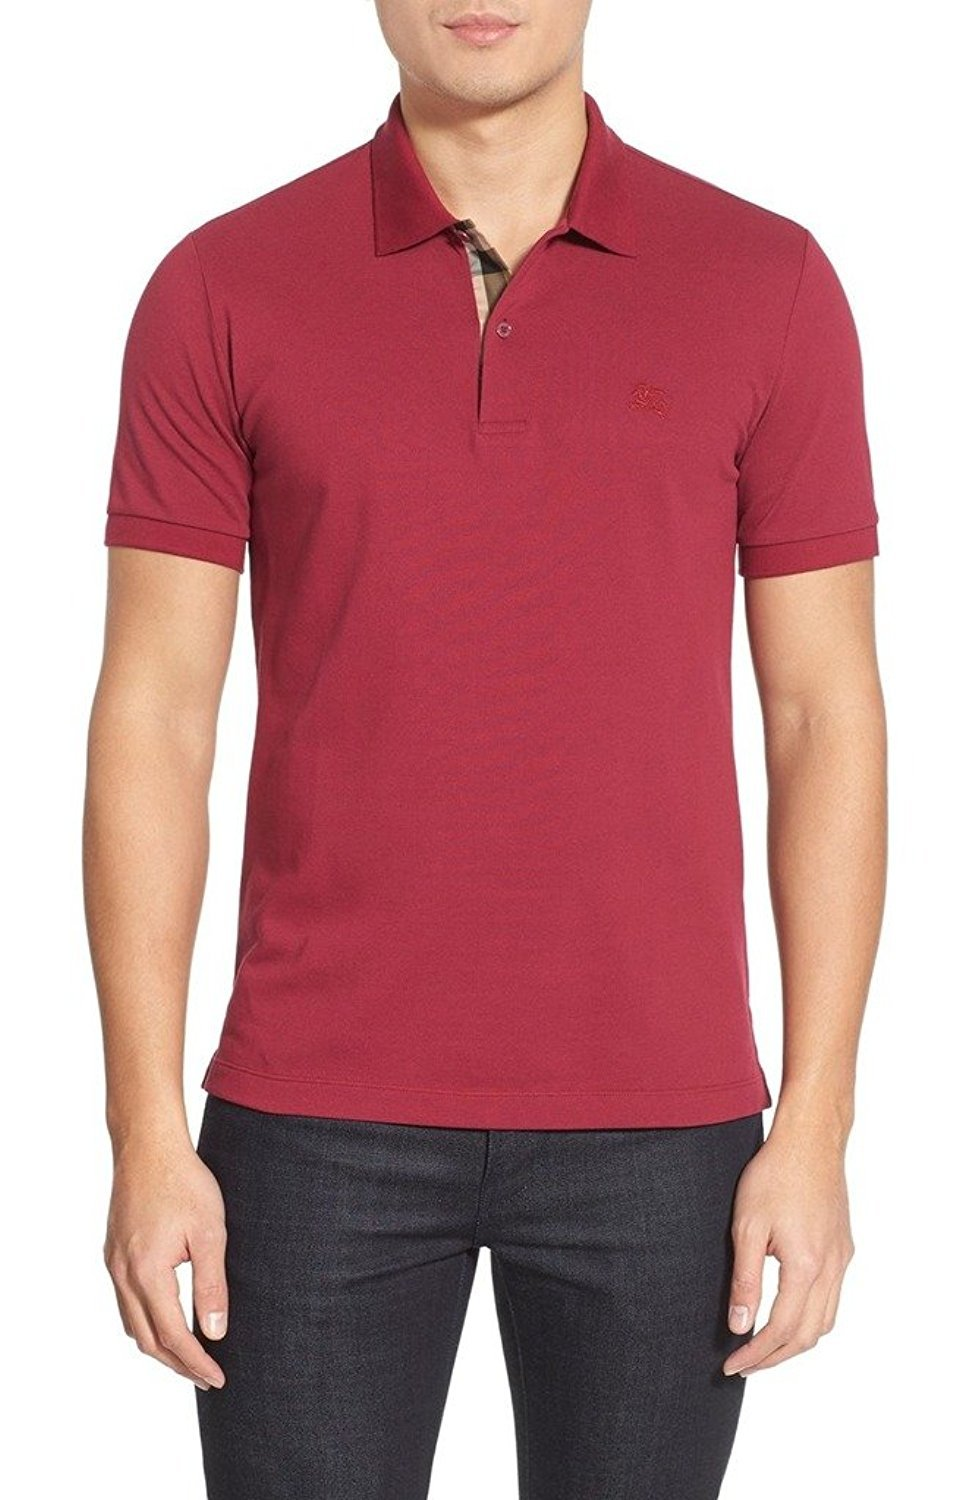 BURBERRY - Men's Polo OXFORD - Red (Military Red), XL